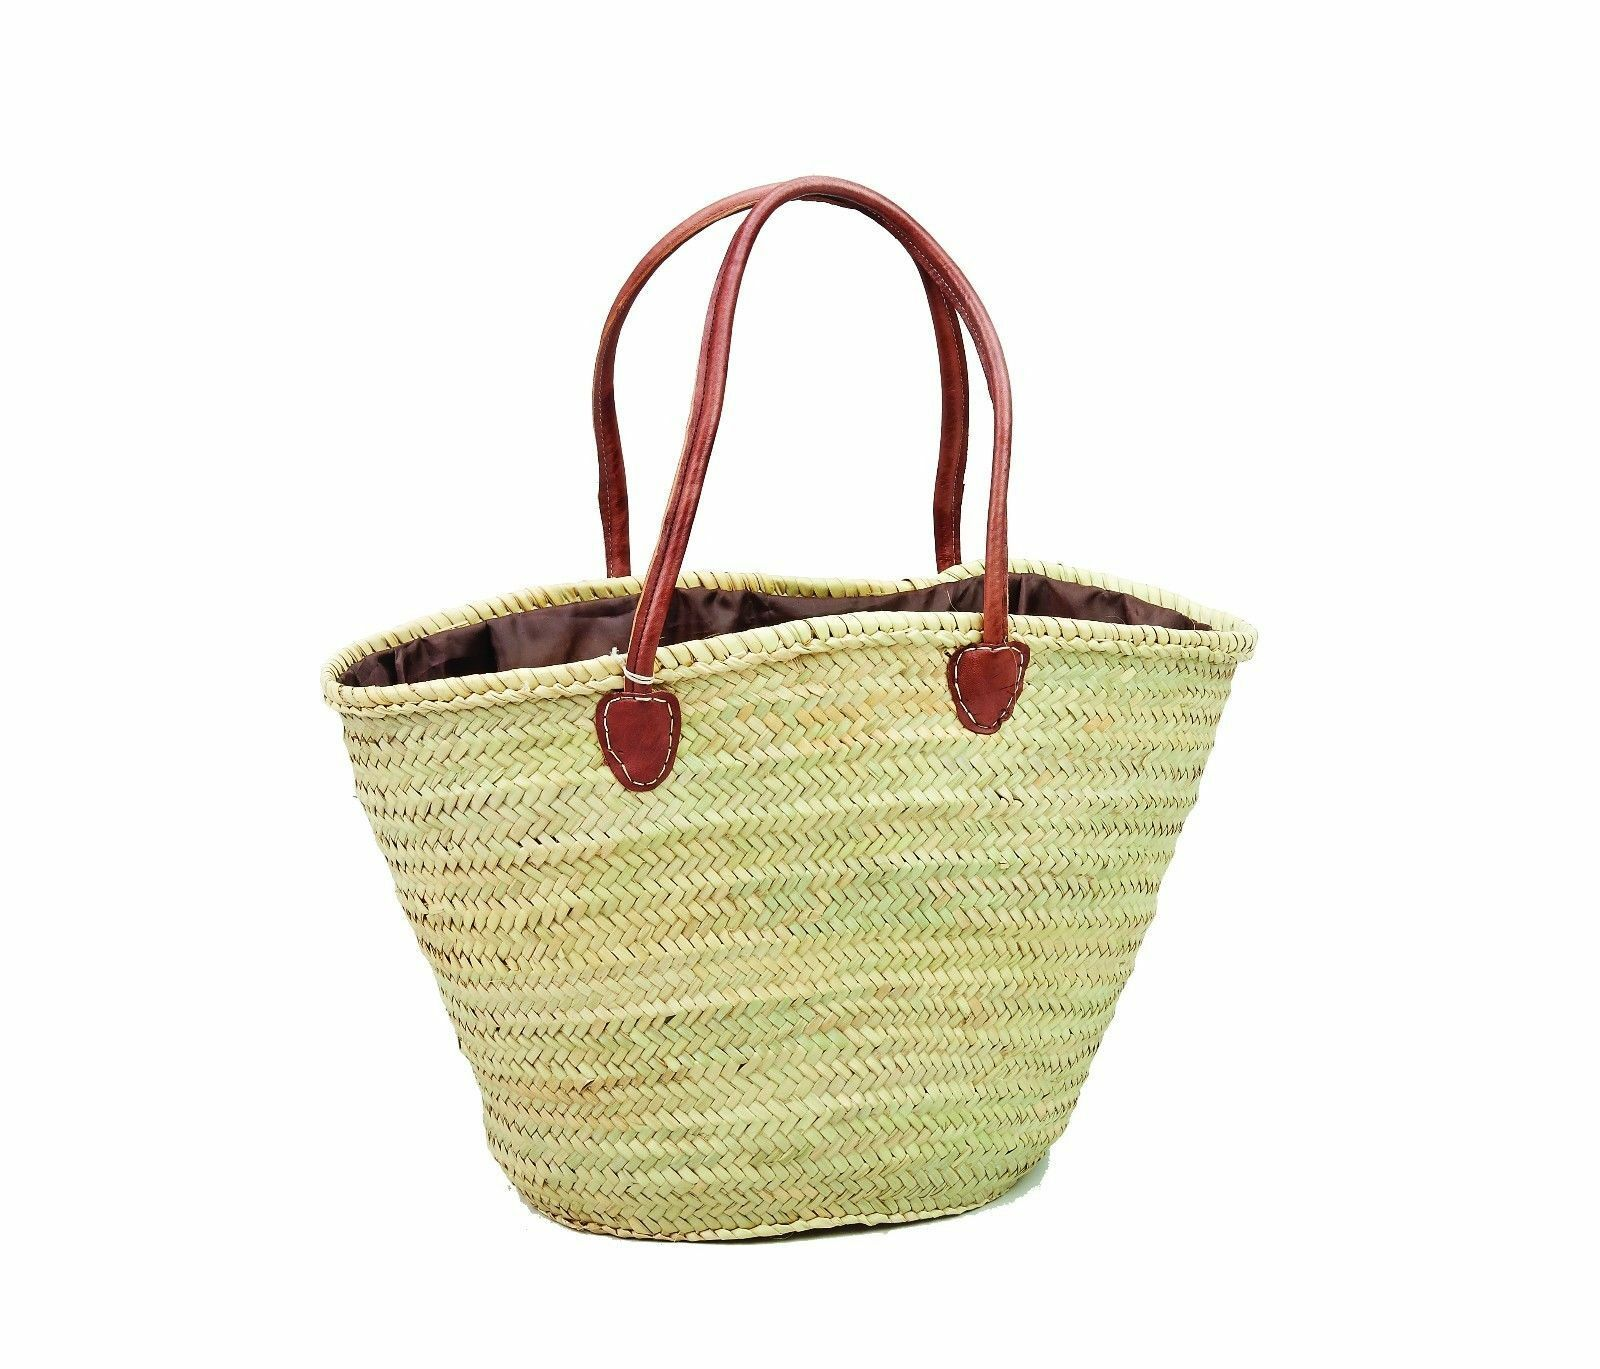 Mgoldccan Straw & Leather Shopping French Market Basket Bag Large Mgoldccan